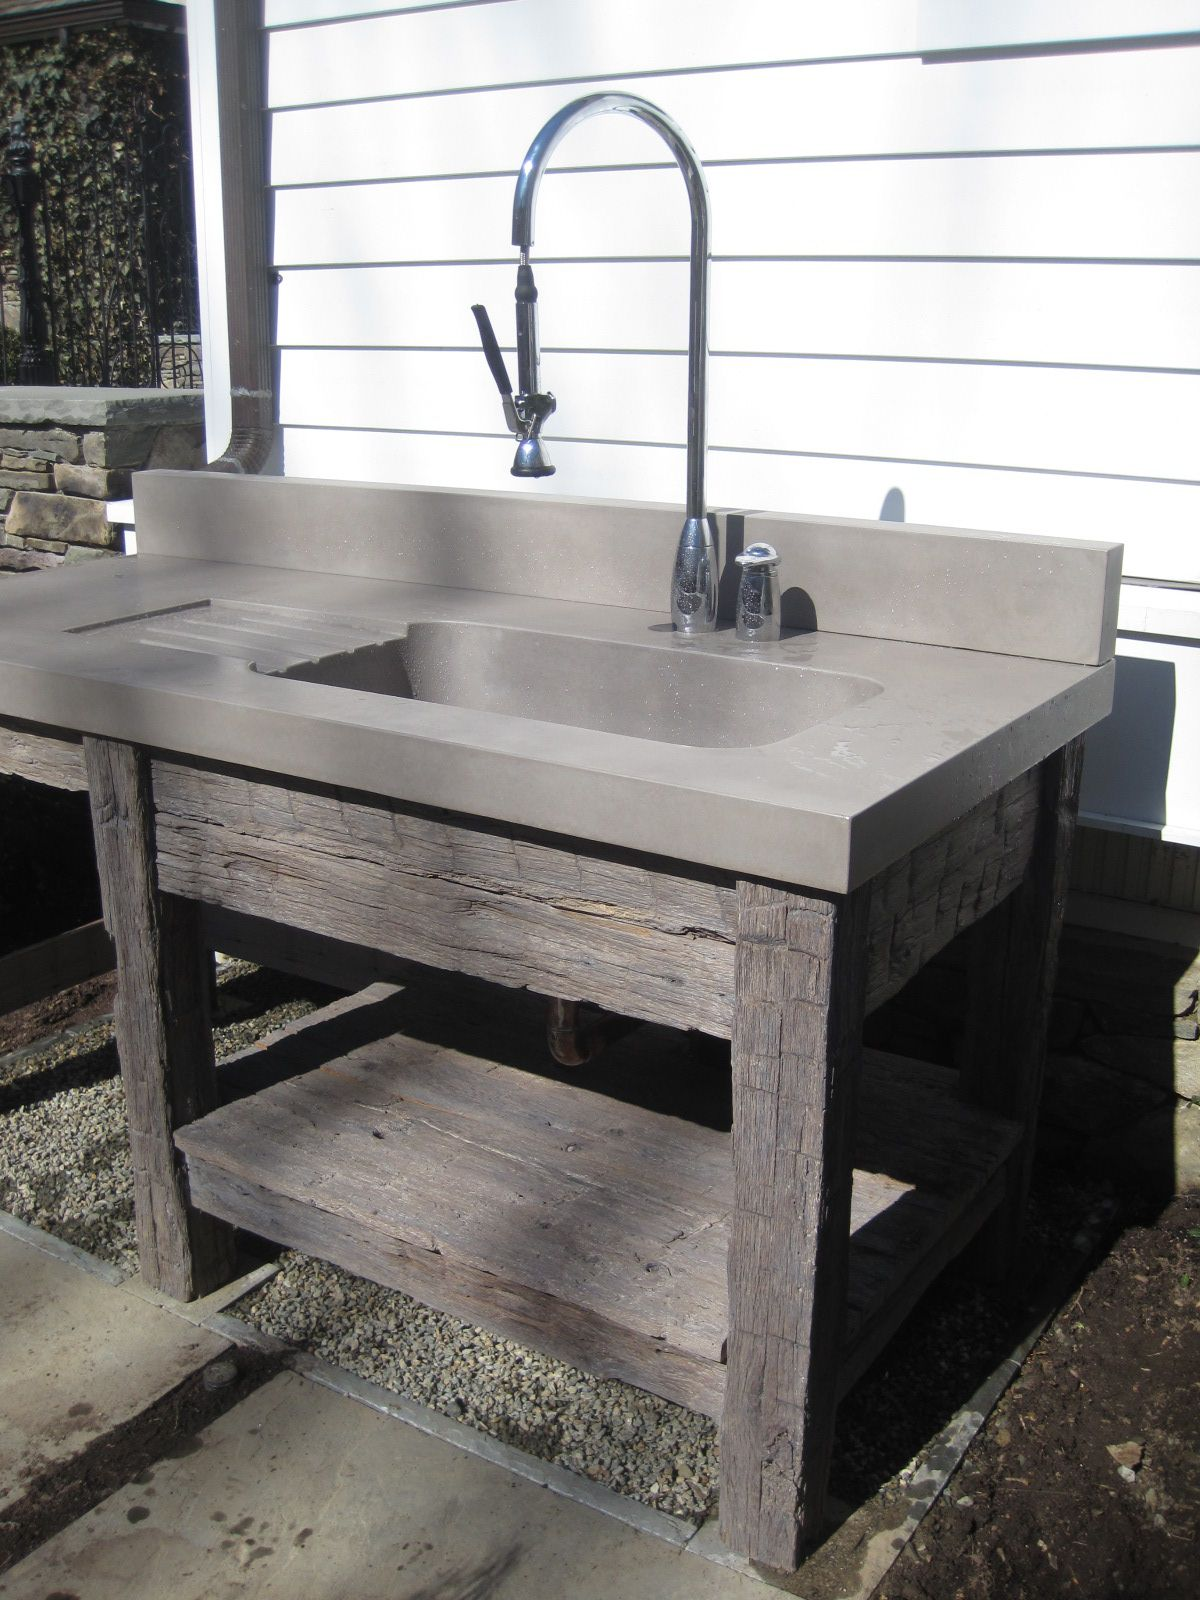 Reclaimed wood vanity base and concrete bathroom sink by Trueform ...